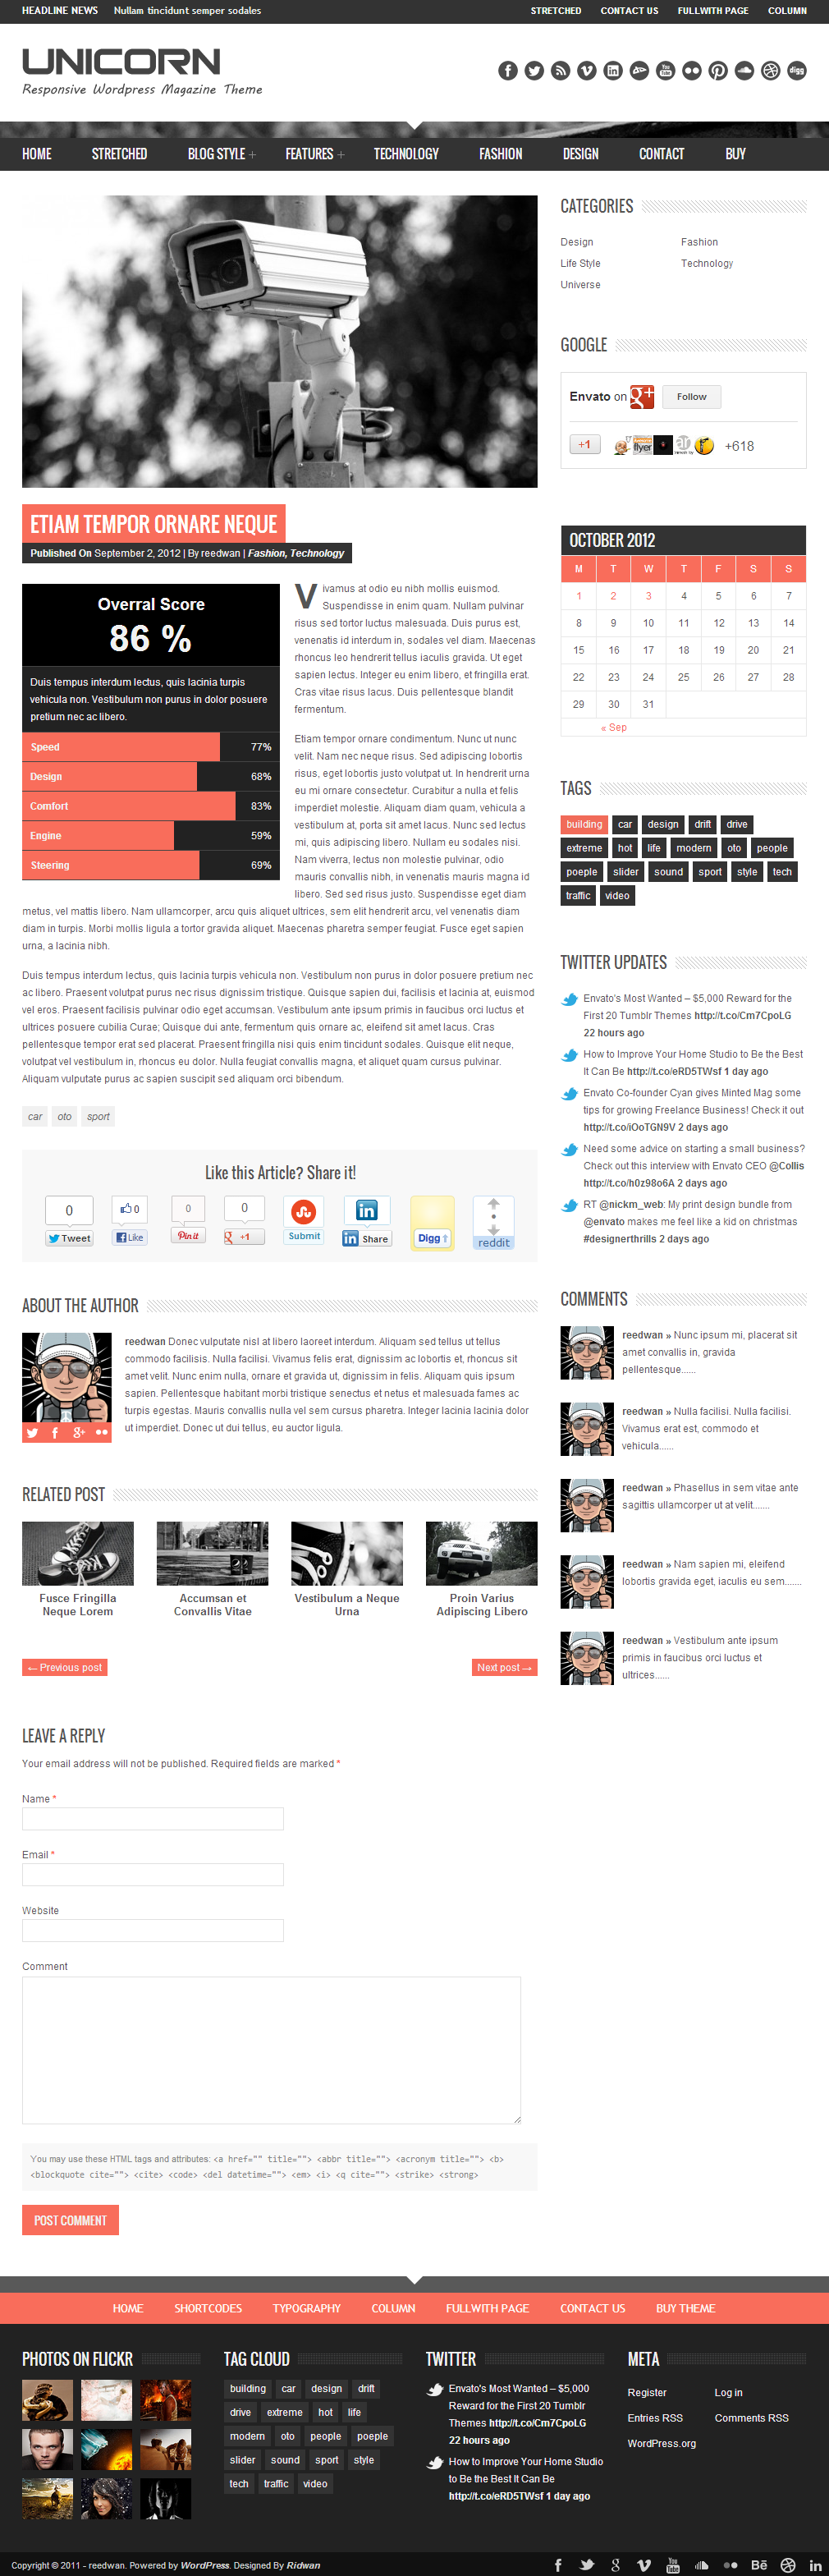 Unicorn - Clean and Responsive Magazine Theme